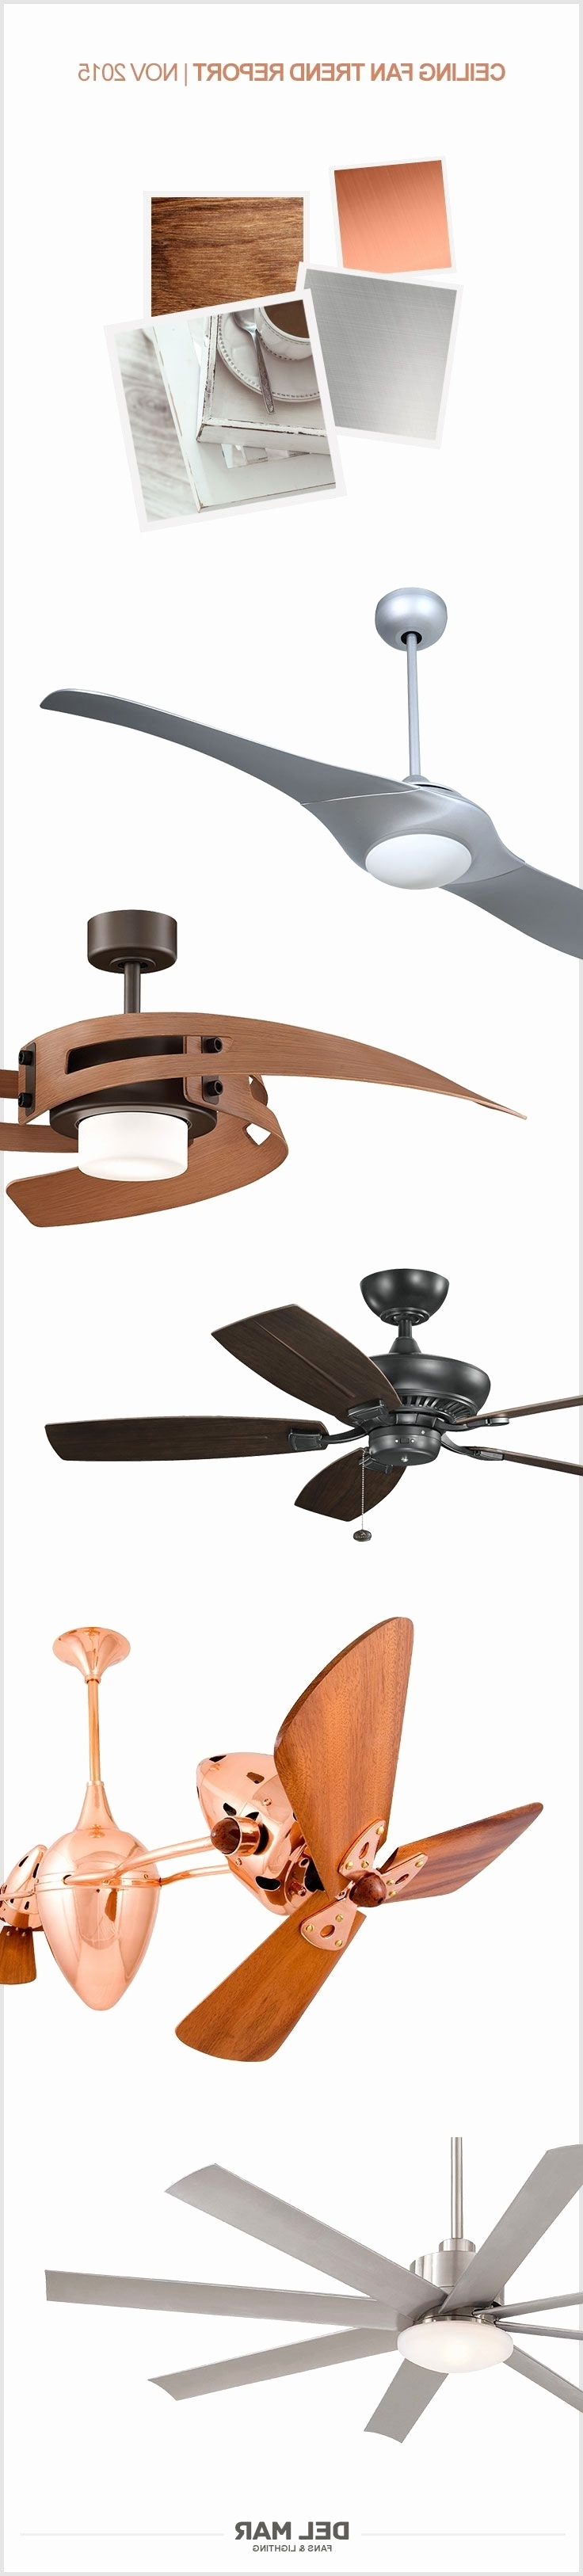 Outdoor Ceiling Fans With High Cfm Throughout 2019 High Cfm Ceiling Fan Outdoor – Ceiling Design Ideas (View 16 of 20)